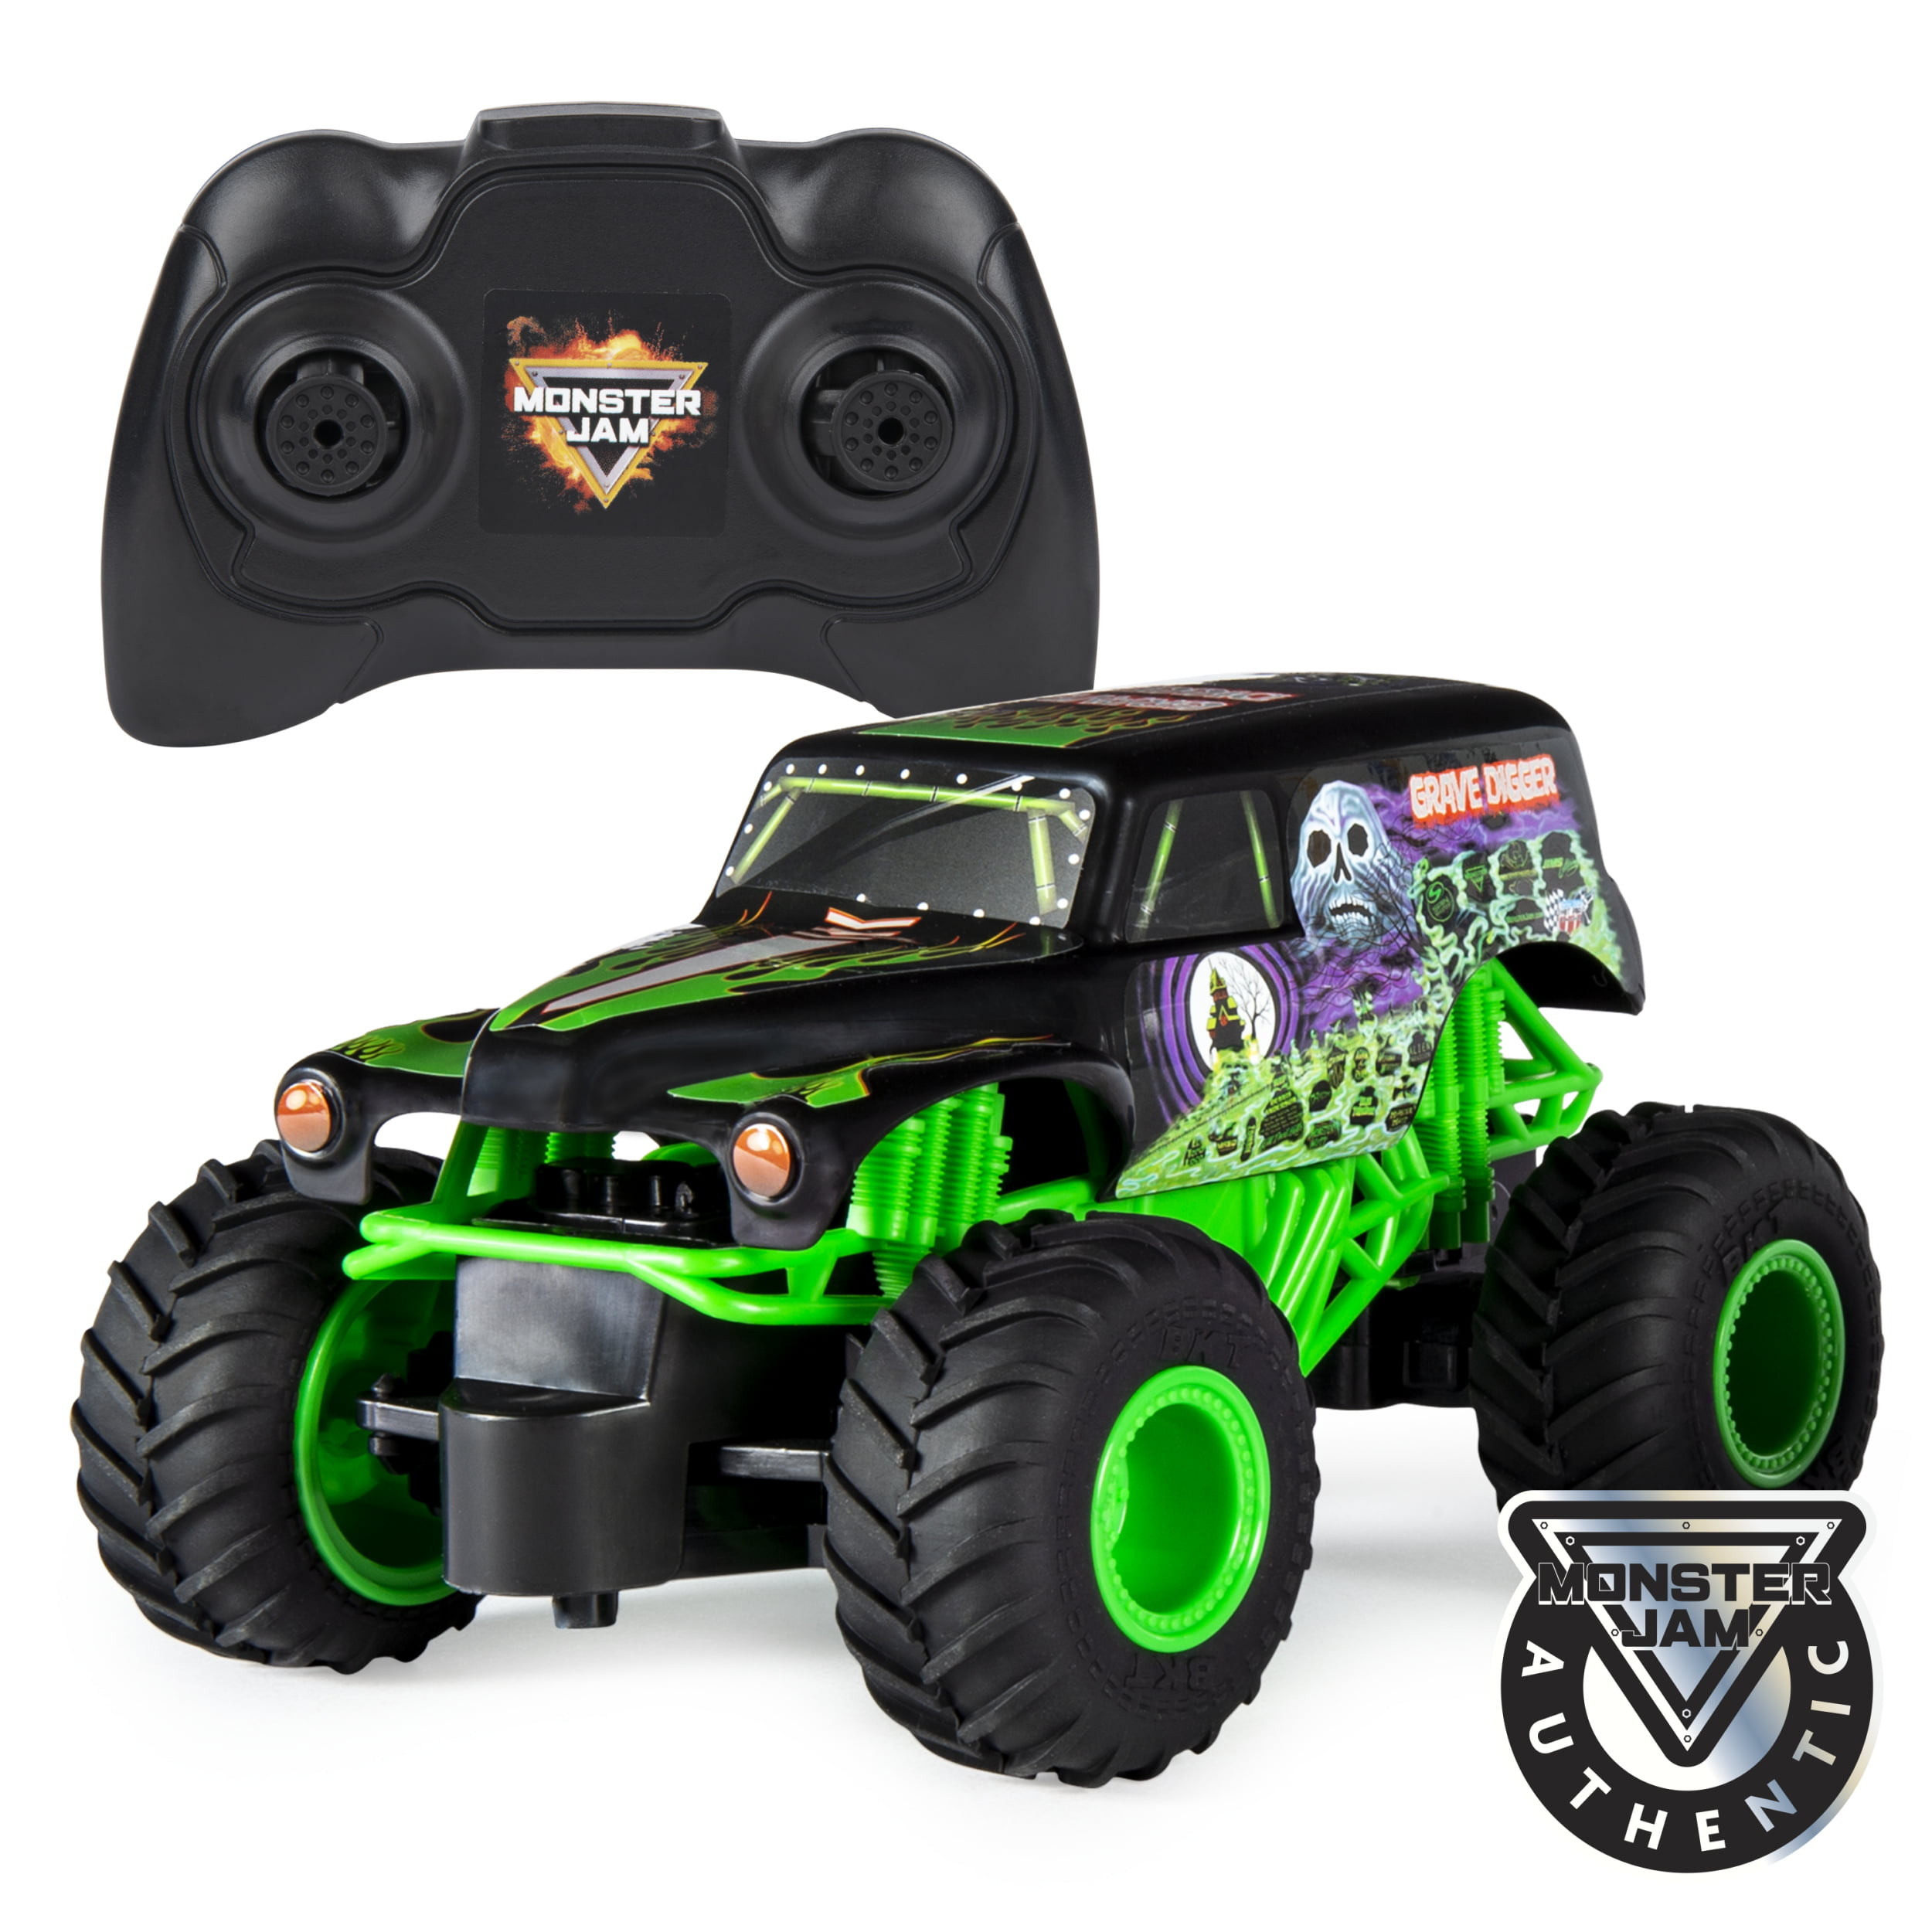 Monster Jam Official Grave Digger Remote Control Monster Truck 1 24 Scale 2 4 Ghz For Ages 4 And Up Walmart Com Walmart Com